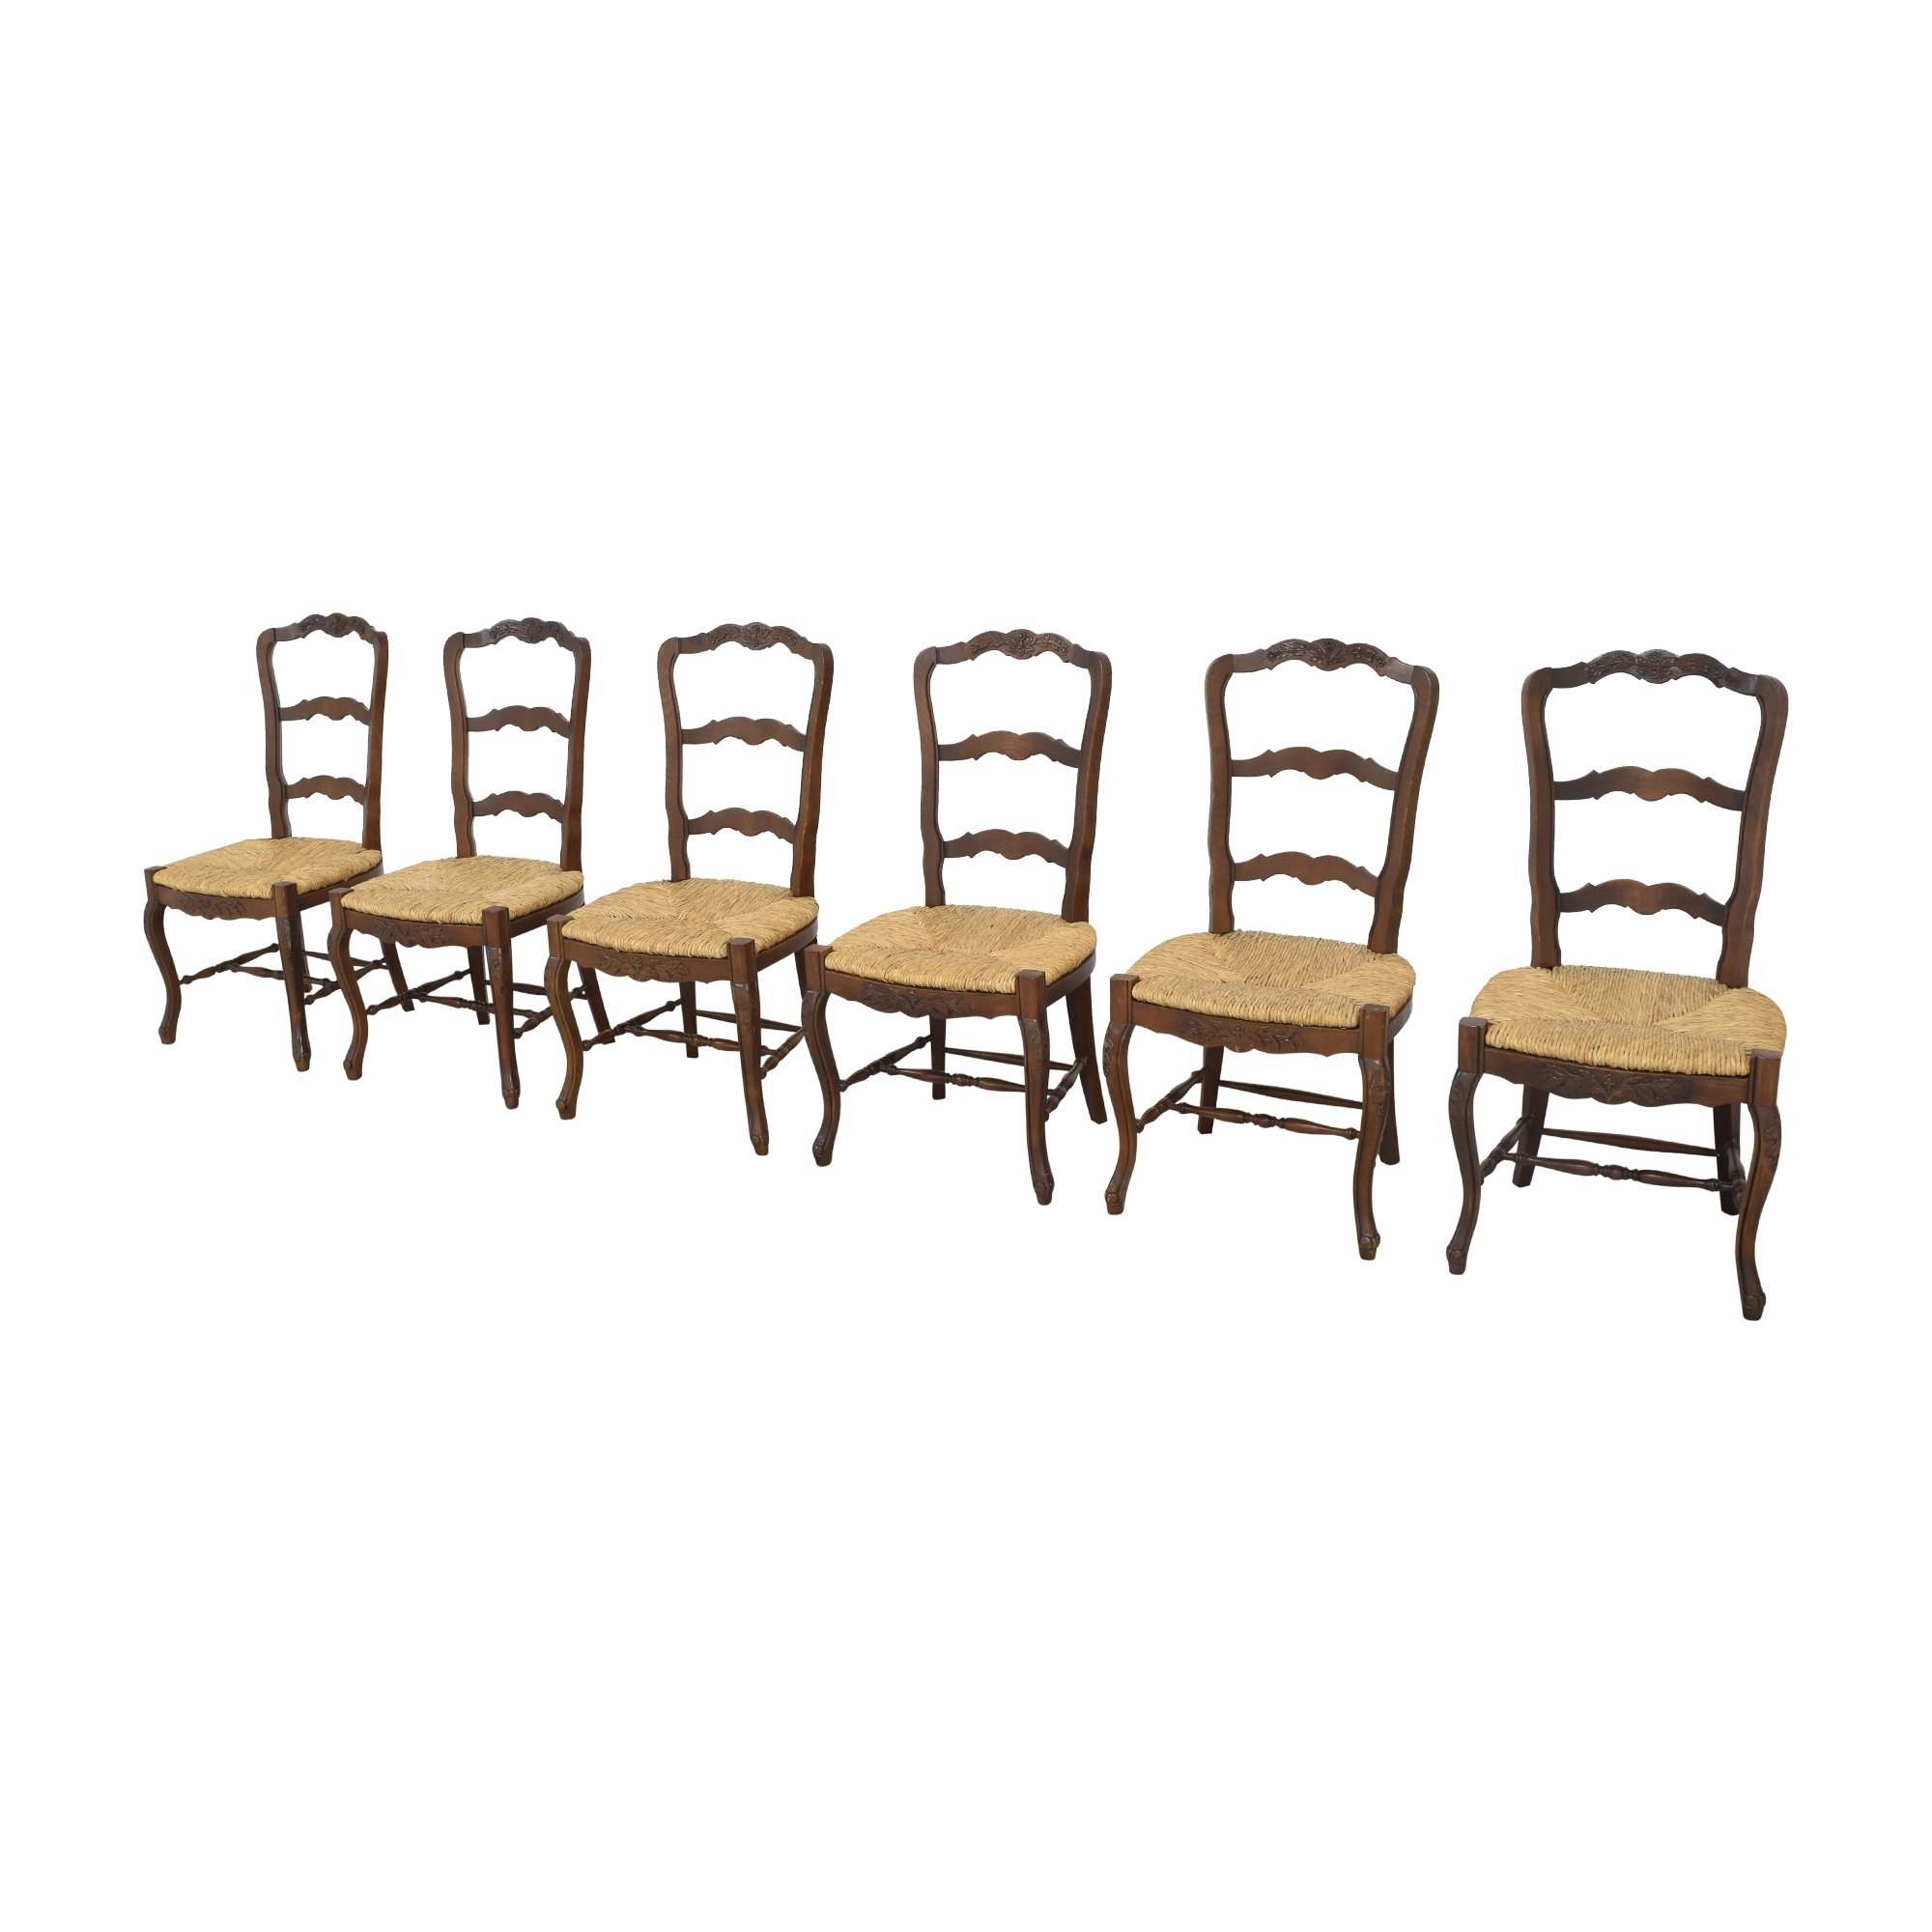 French-Style Ladderback Dining Chairs used